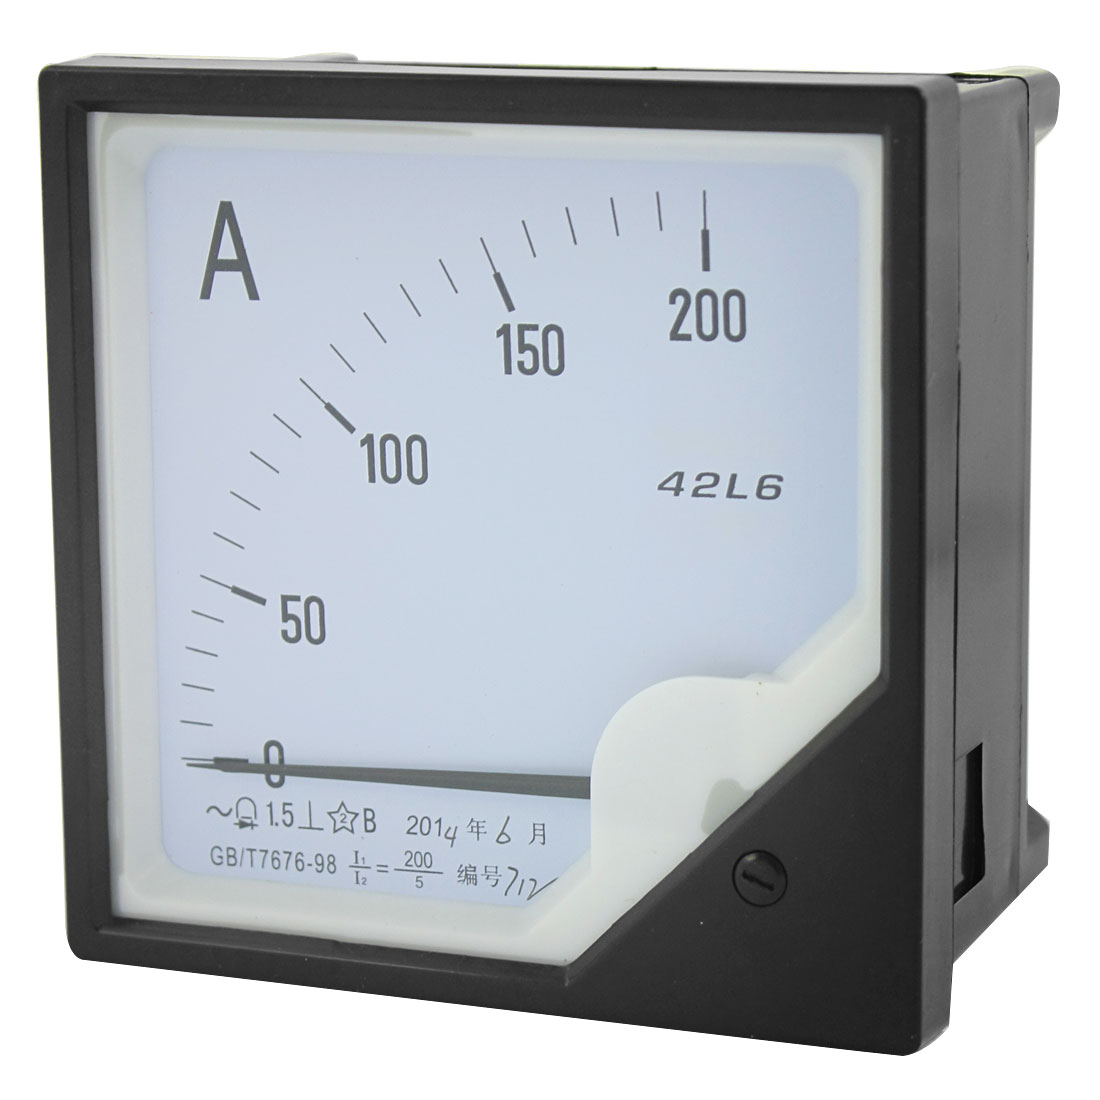 42L6 AC 0-200A Measuring Range Class 1.5 Current Testing Panel Mounting Square Plastic Analog Ammeter Amperemeter